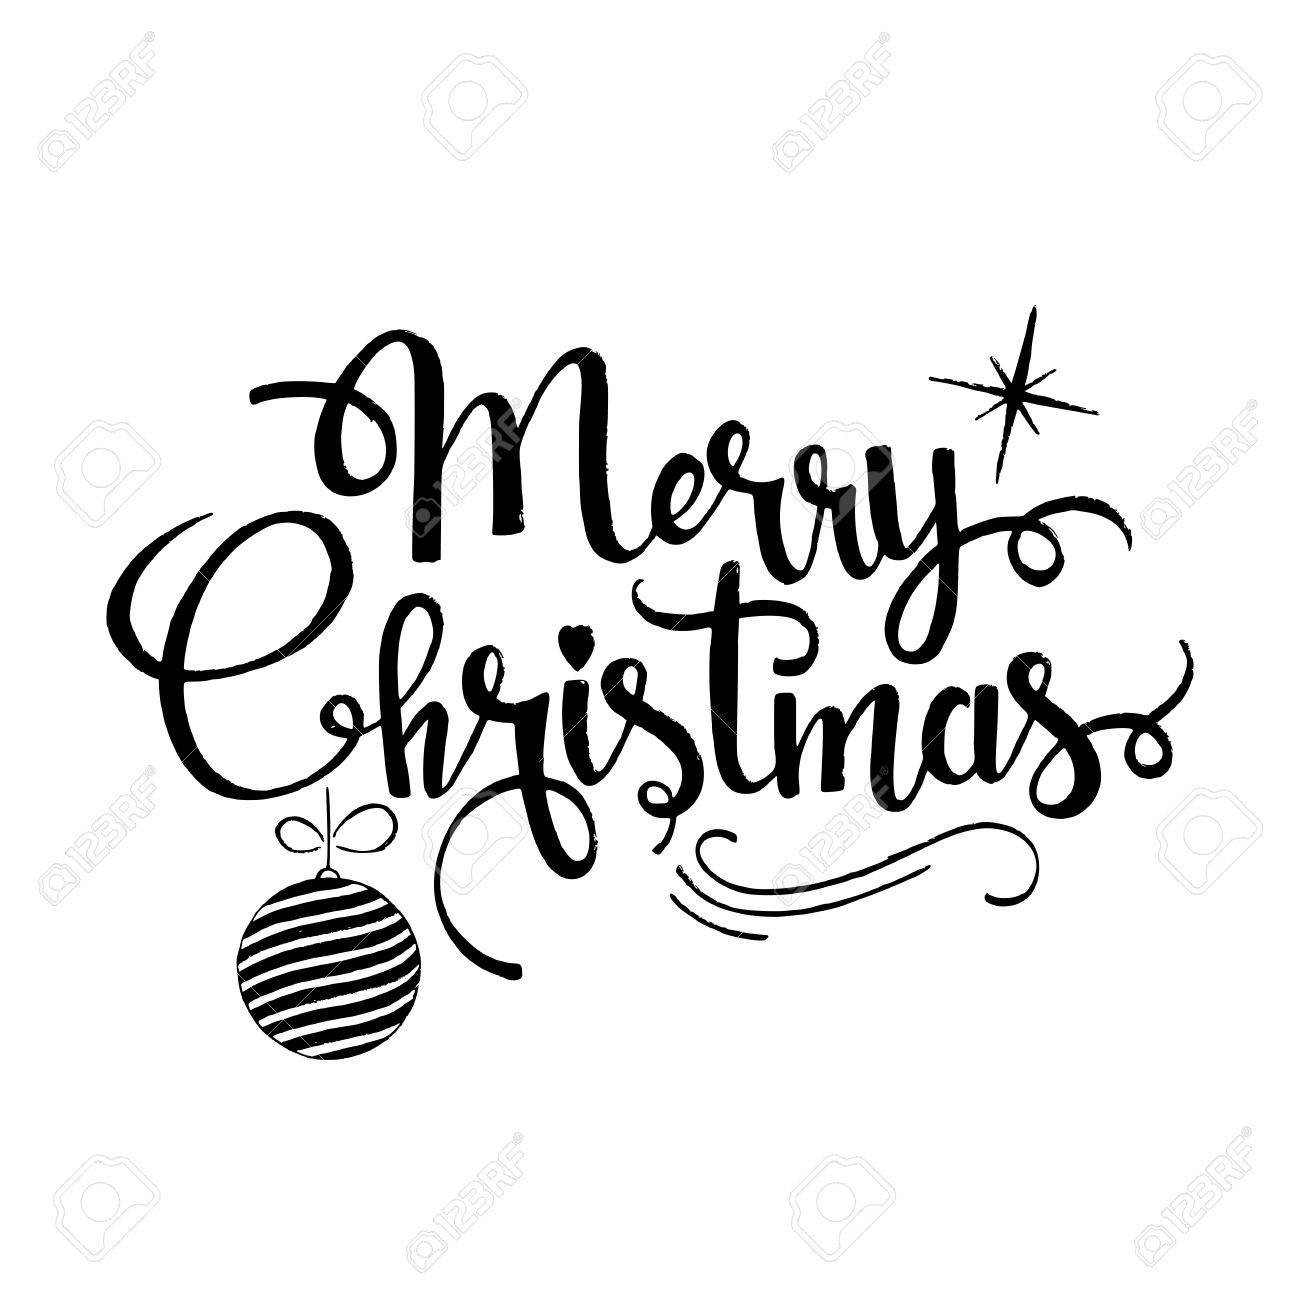 Merry Christmas Lettering.Merry Christmas Lettering Modern Hand Drawn Calligraphy With